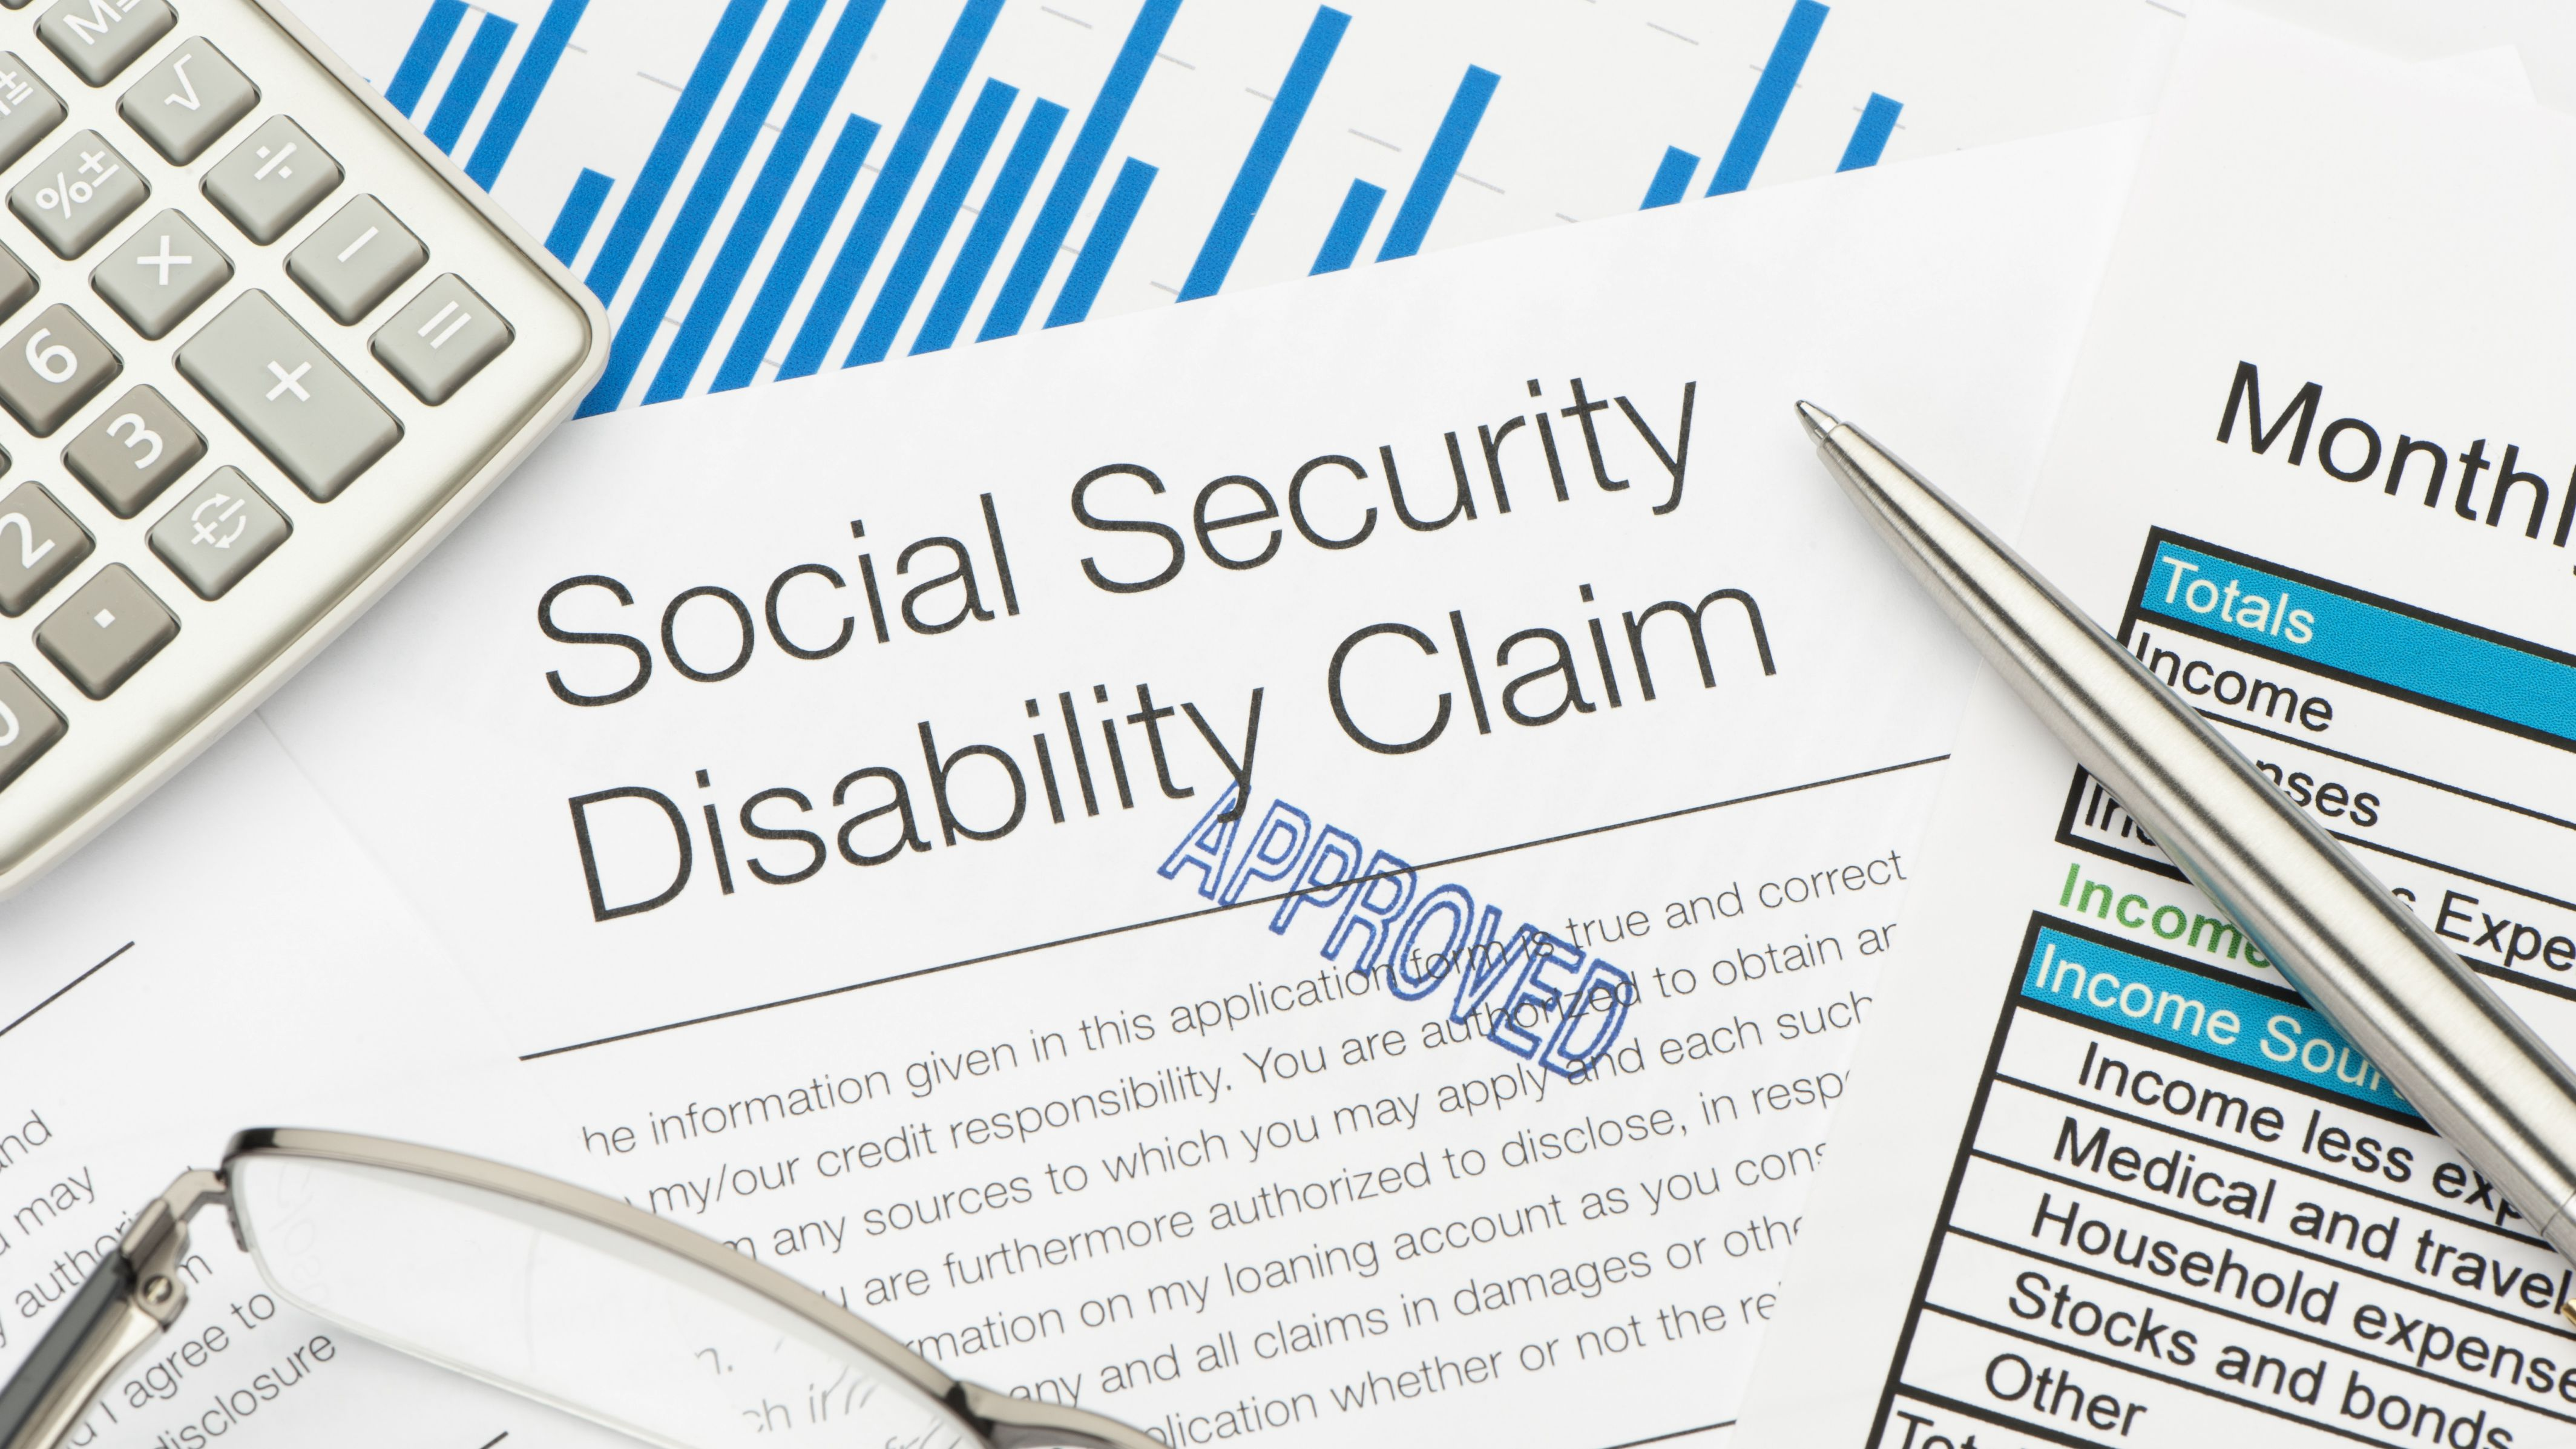 Social Security Disability Insurance Determination